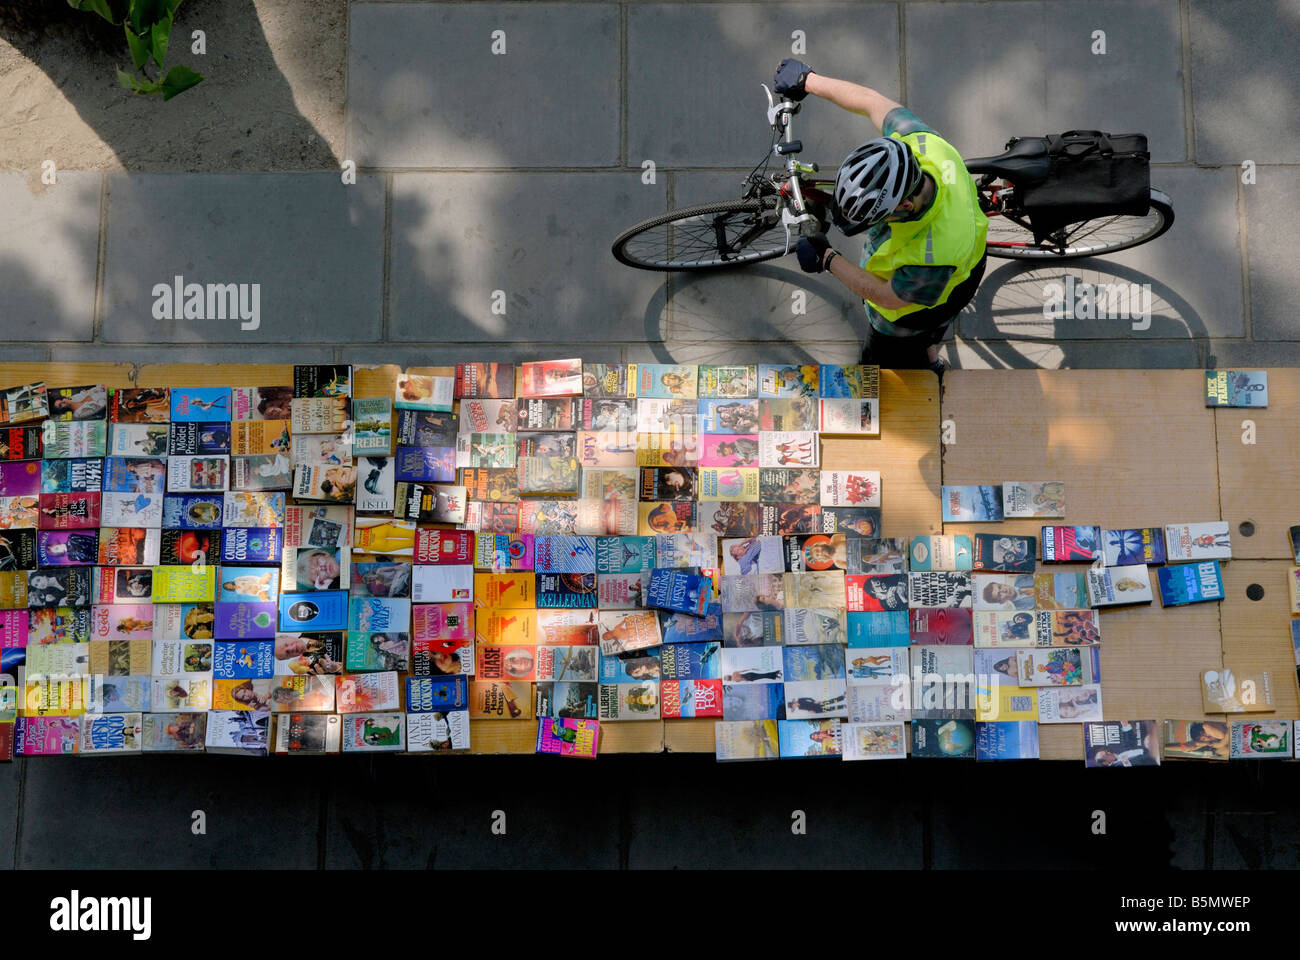 Man with bicycle looking at a table of books at the South Bank outdoor Book Market, London, England - Stock Image